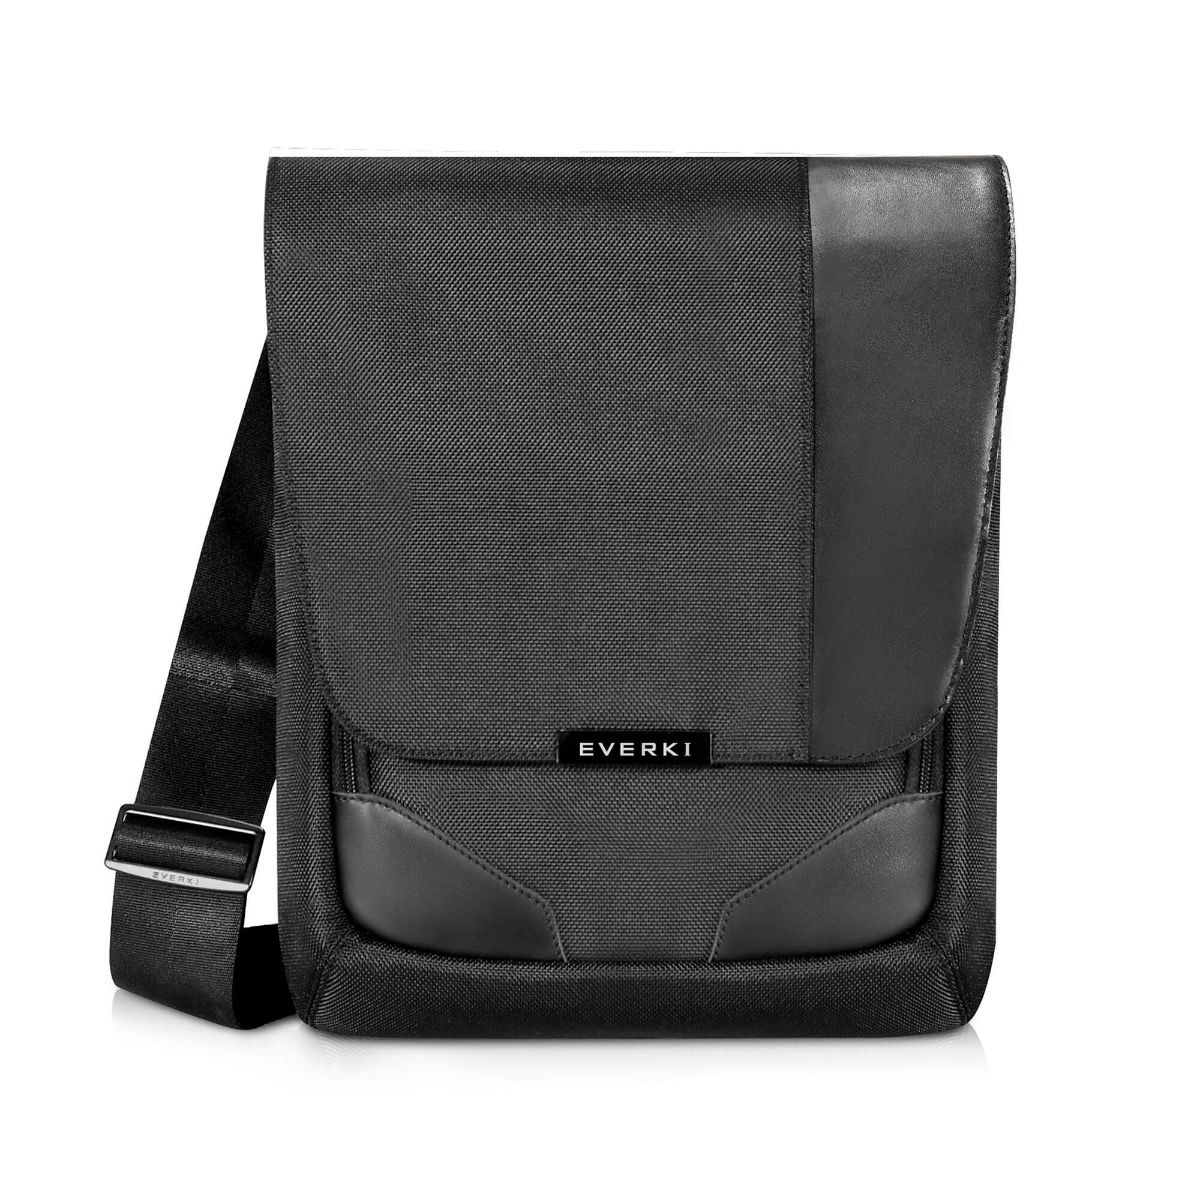 EVERKI Venue XL RFID 12 Inch Messenger